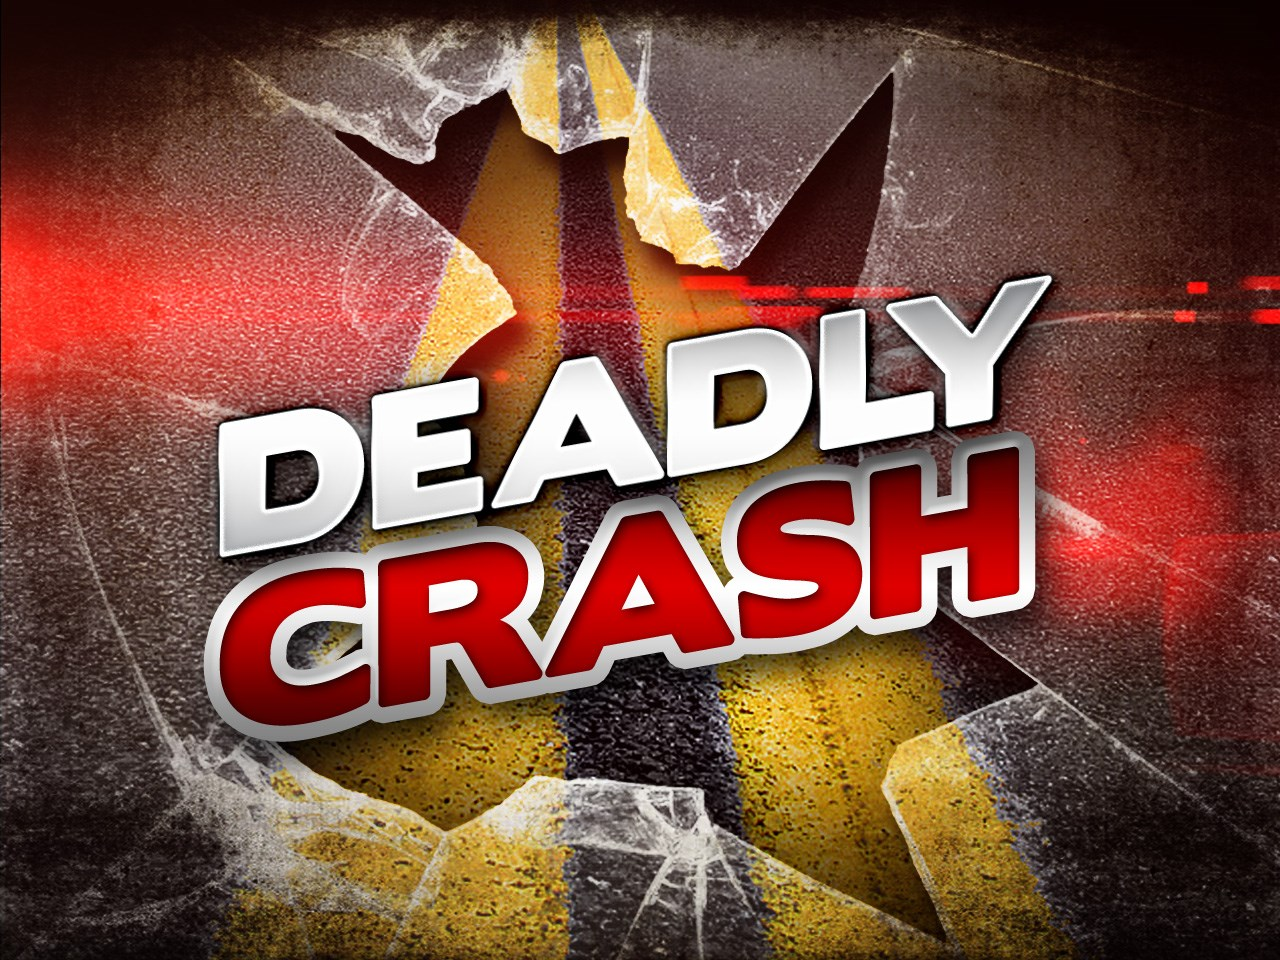 DEADLY CRASH (TEXT)_1553294804148.jpg.jpg